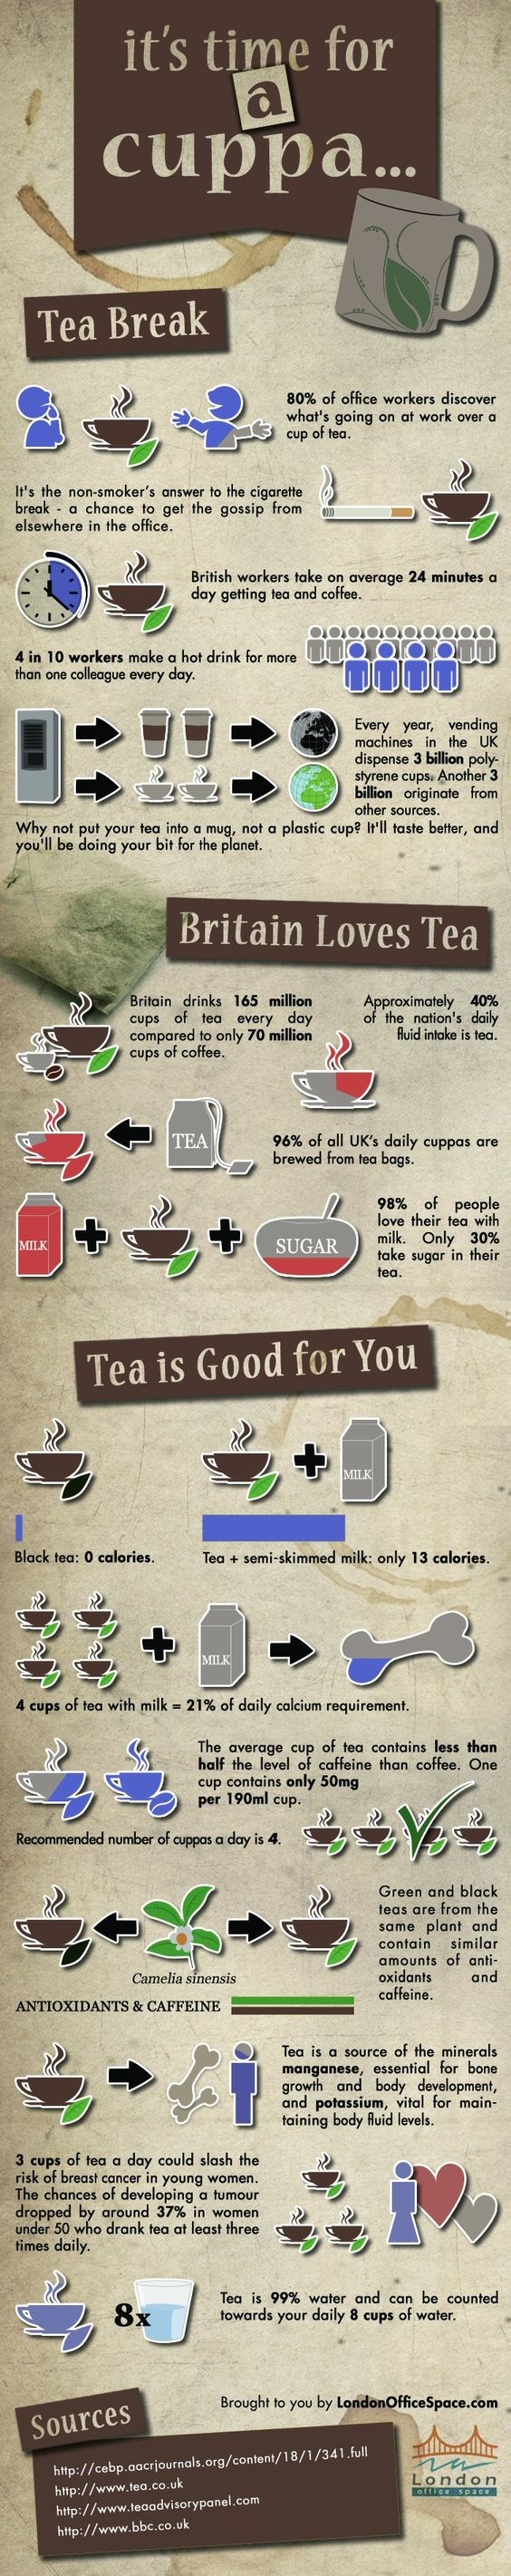 Tea drinking traditions in the British office - only 4 in 10 people make a cup of hot drink for more than one colleague every day. Infographic